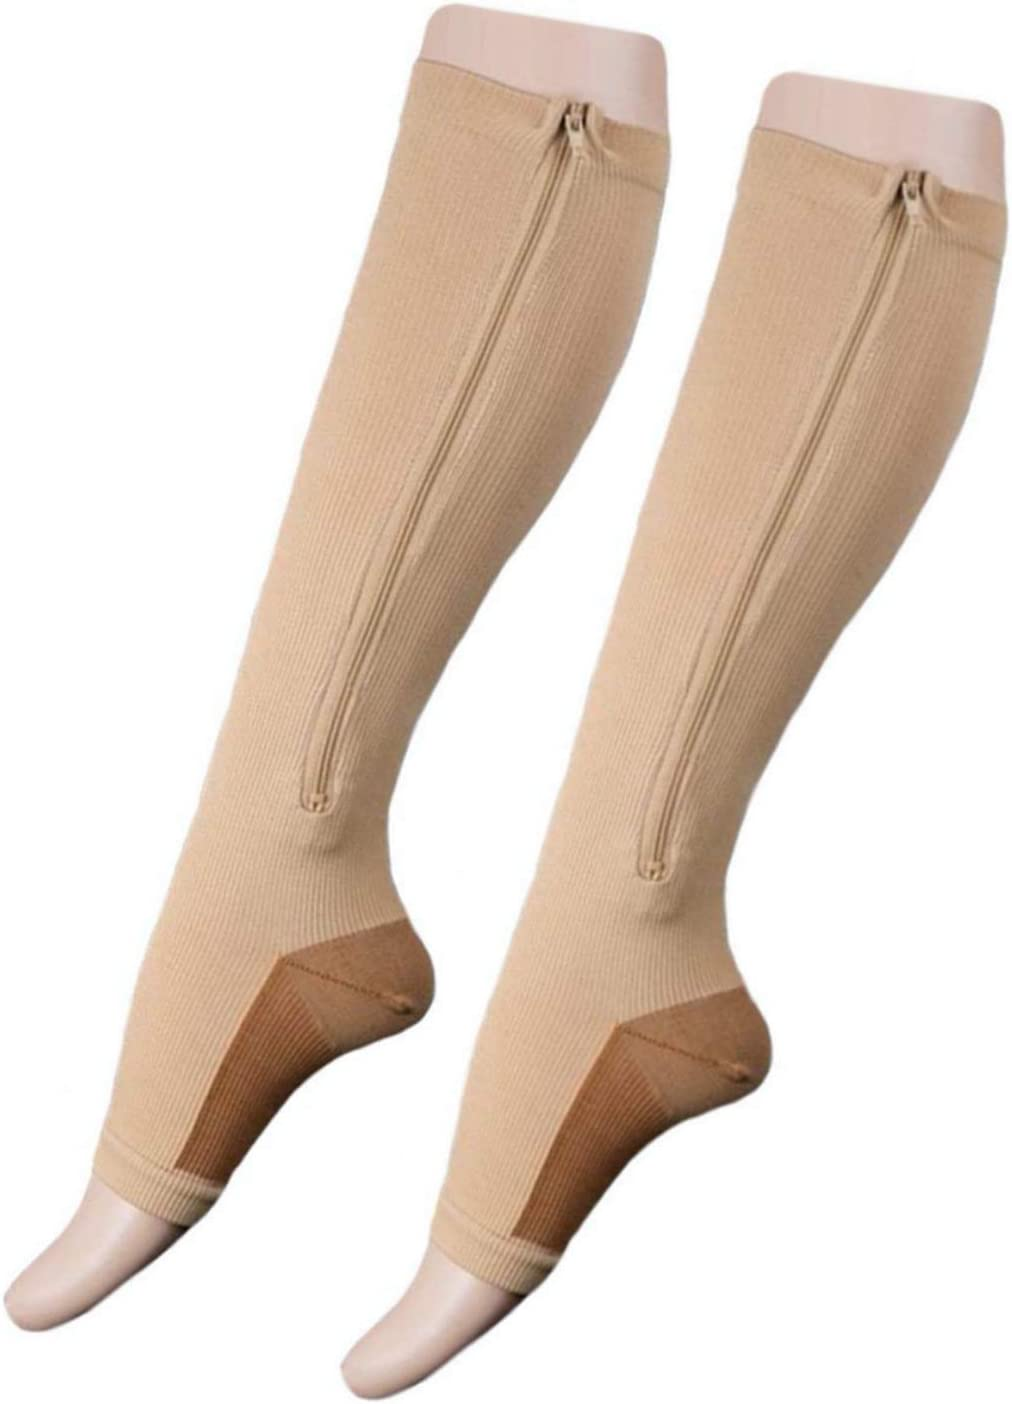 Presadee Kid's Edition Copper Infused Zipper Compression Active Full Leg Protection Improve Circulation Socks (Beige, L/XL)